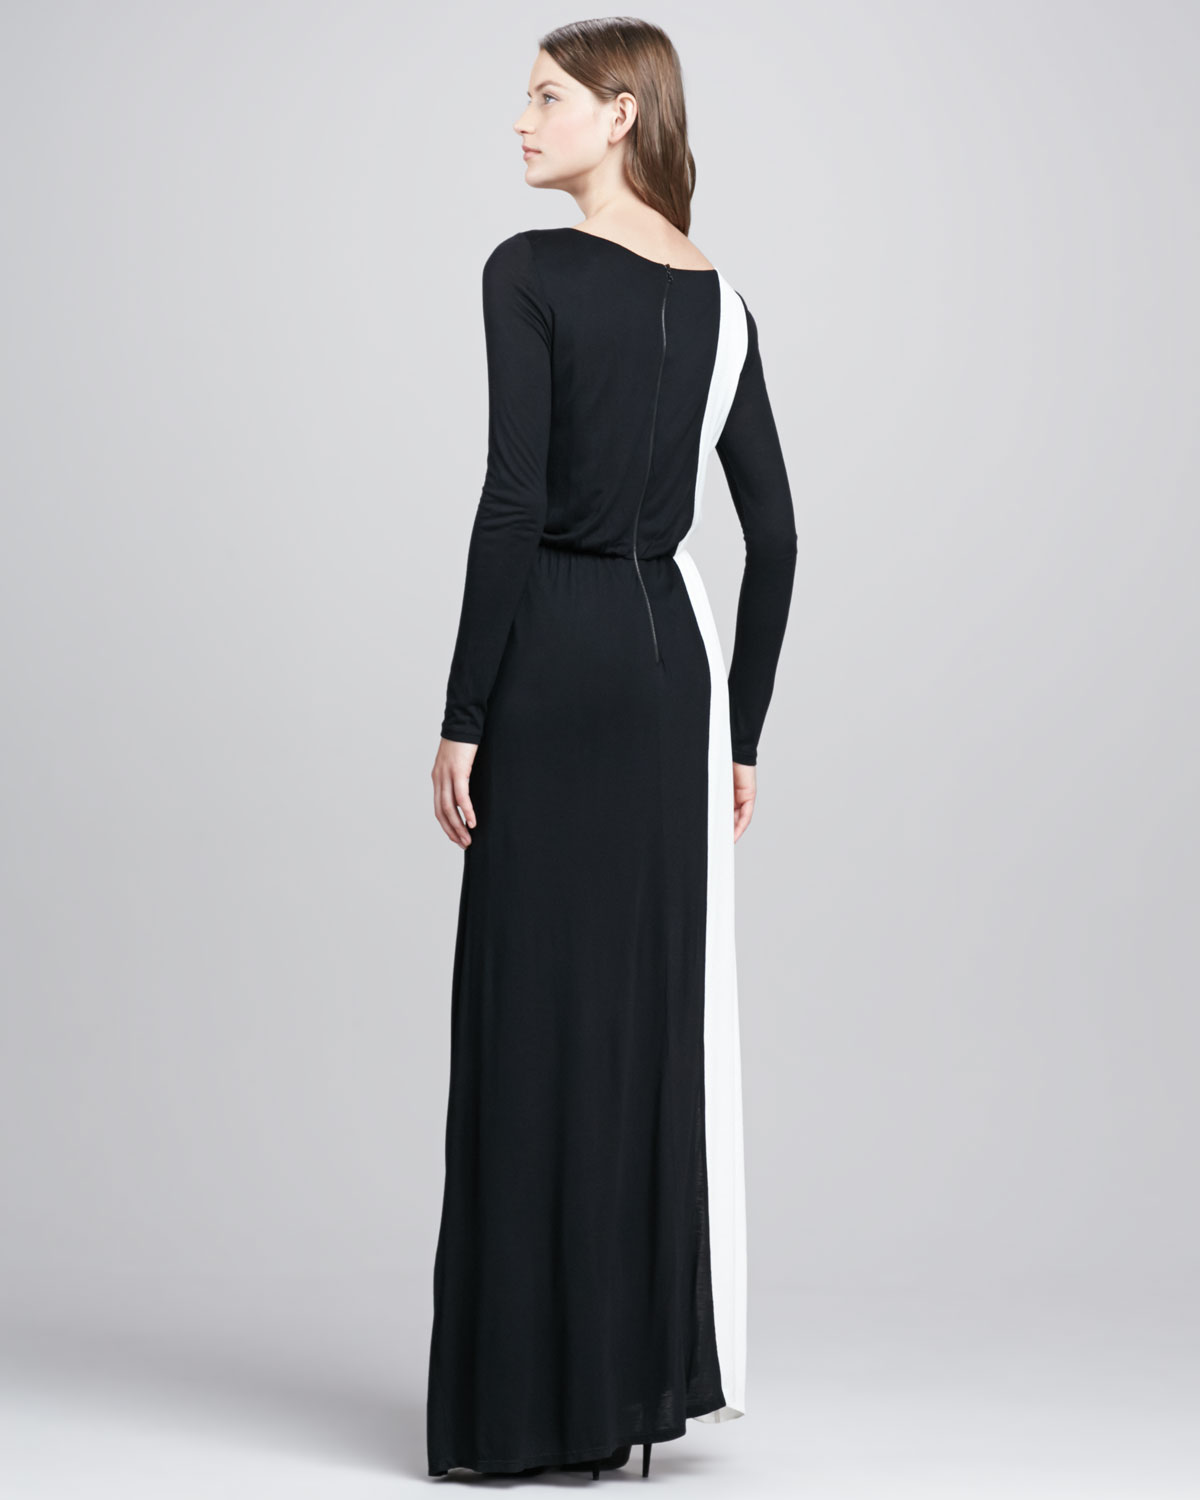 Alice Olivia Long Sleeve Two Tone Maxi Dress In Black Lyst